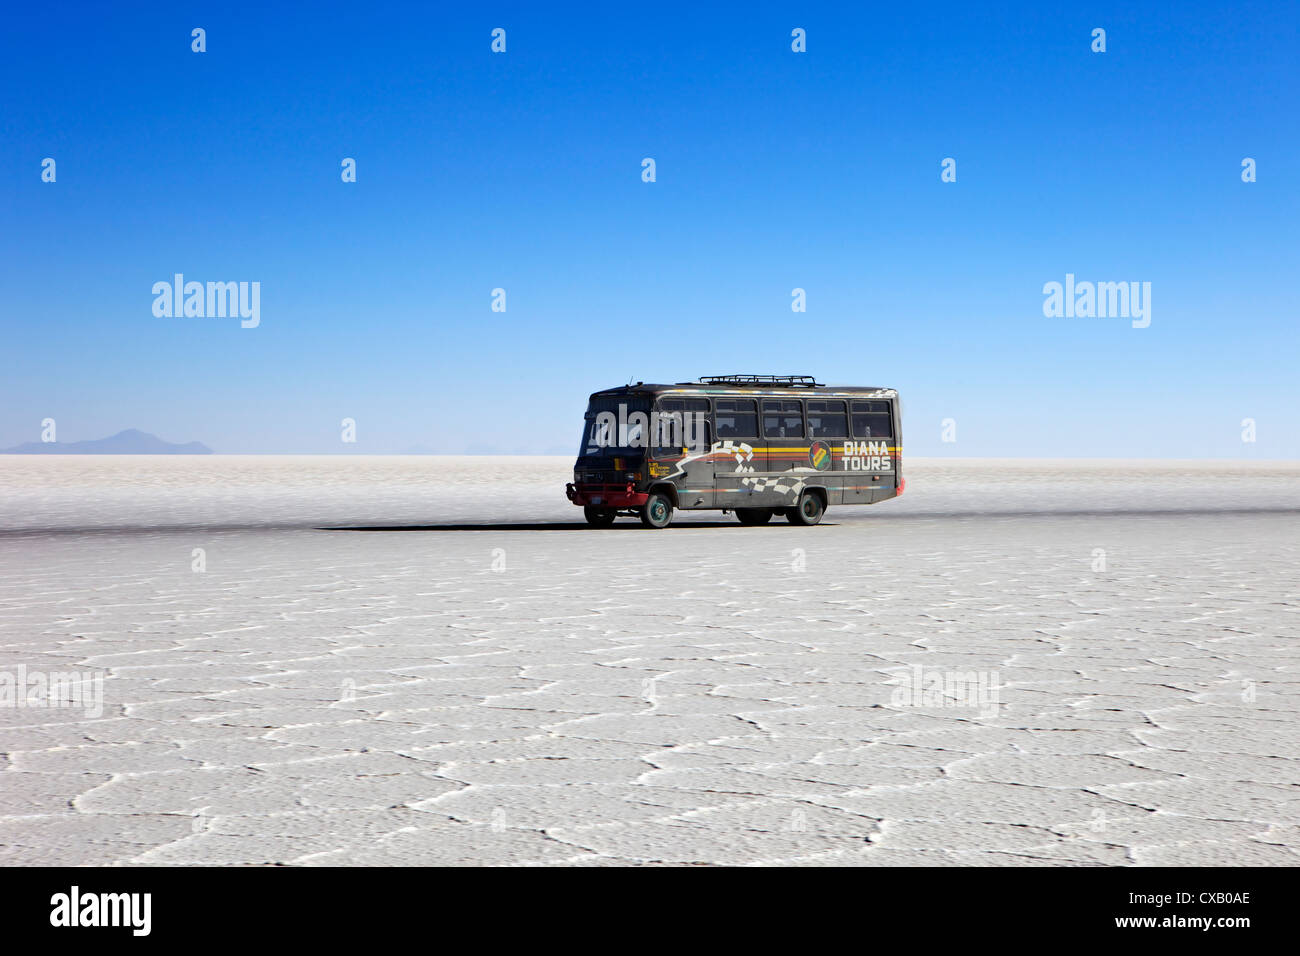 Bus sur Salar de Uyuni, le plus grand de sel dans le monde, au sud-ouest de la Bolivie, de l'Amérique du Photo Stock